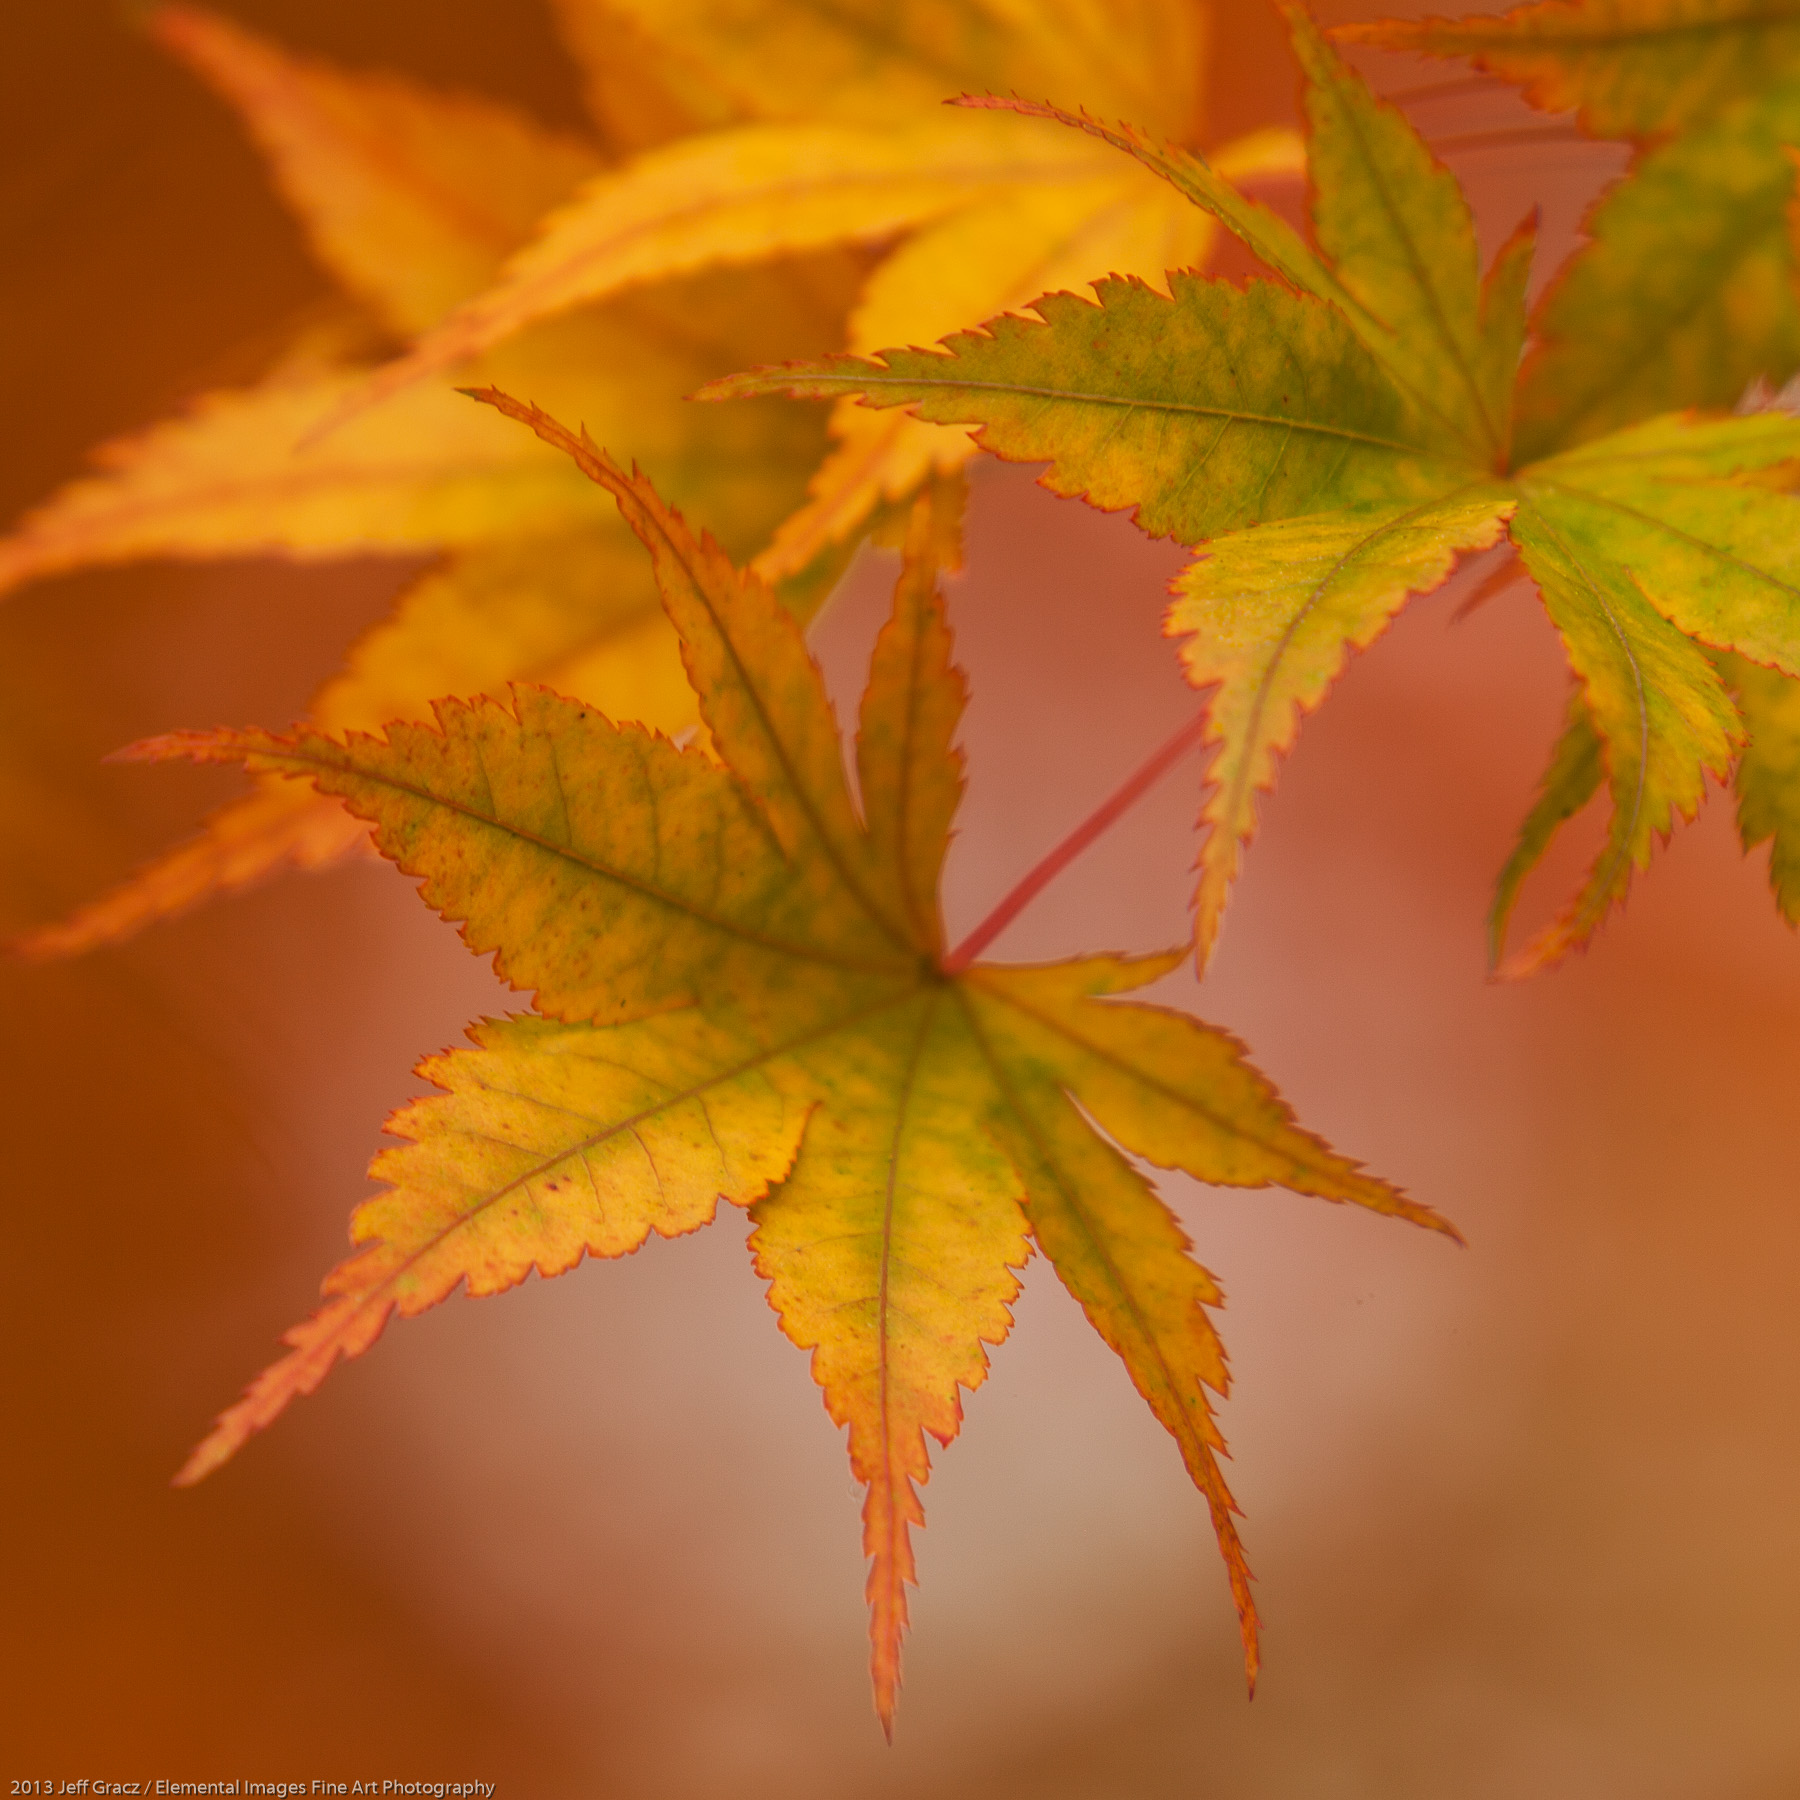 Leaves LXIX | Portland | OR | USA - © 2013 Jeff Gracz / Elemental Images Fine Art Photography - All Rights Reserved Worldwide